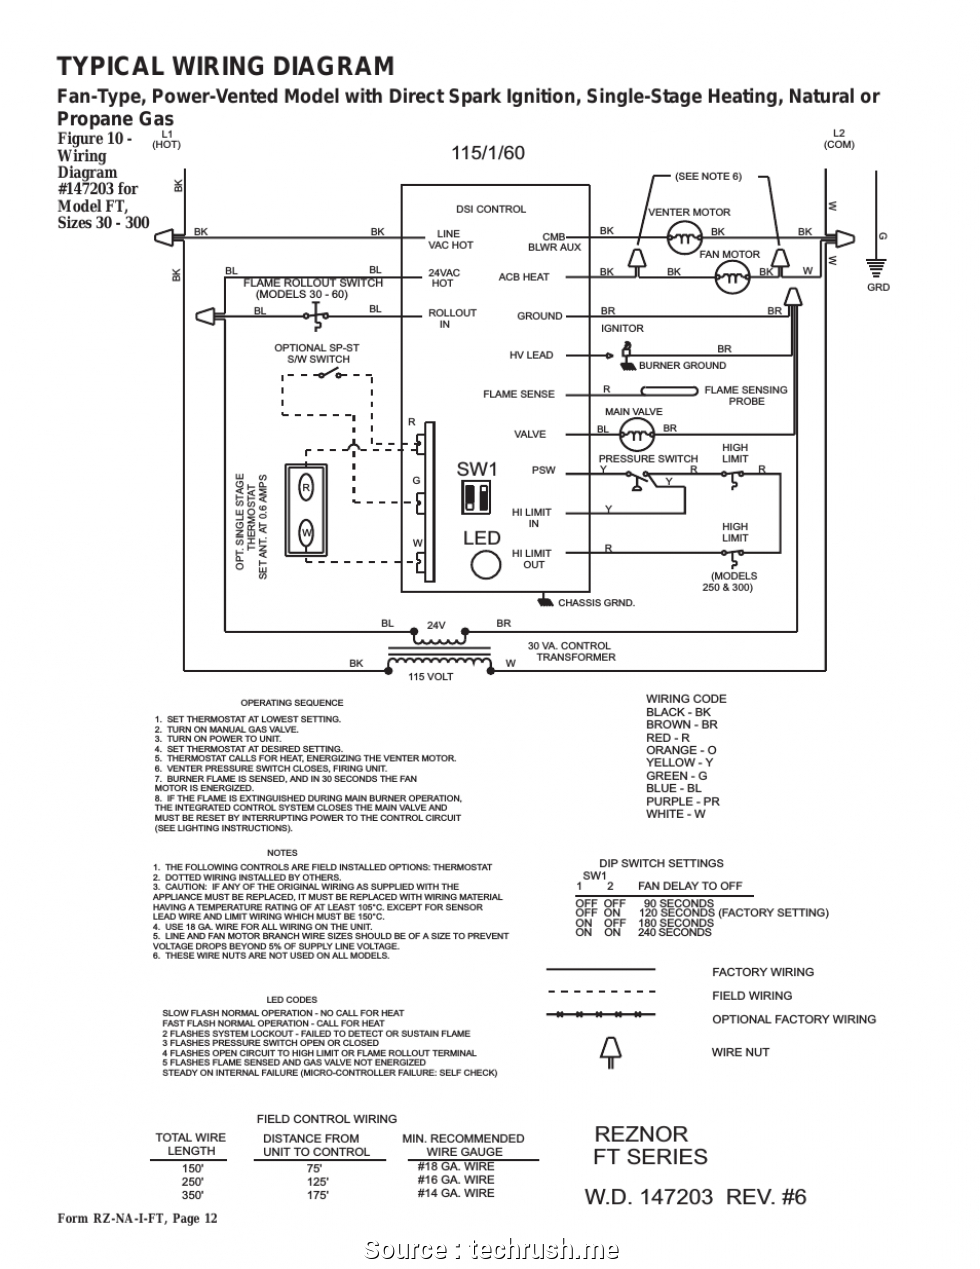 Reznor Waste Oil Furnace Thermostat Wiring | Wiring Diagram - Reznor Heater Wiring Diagram